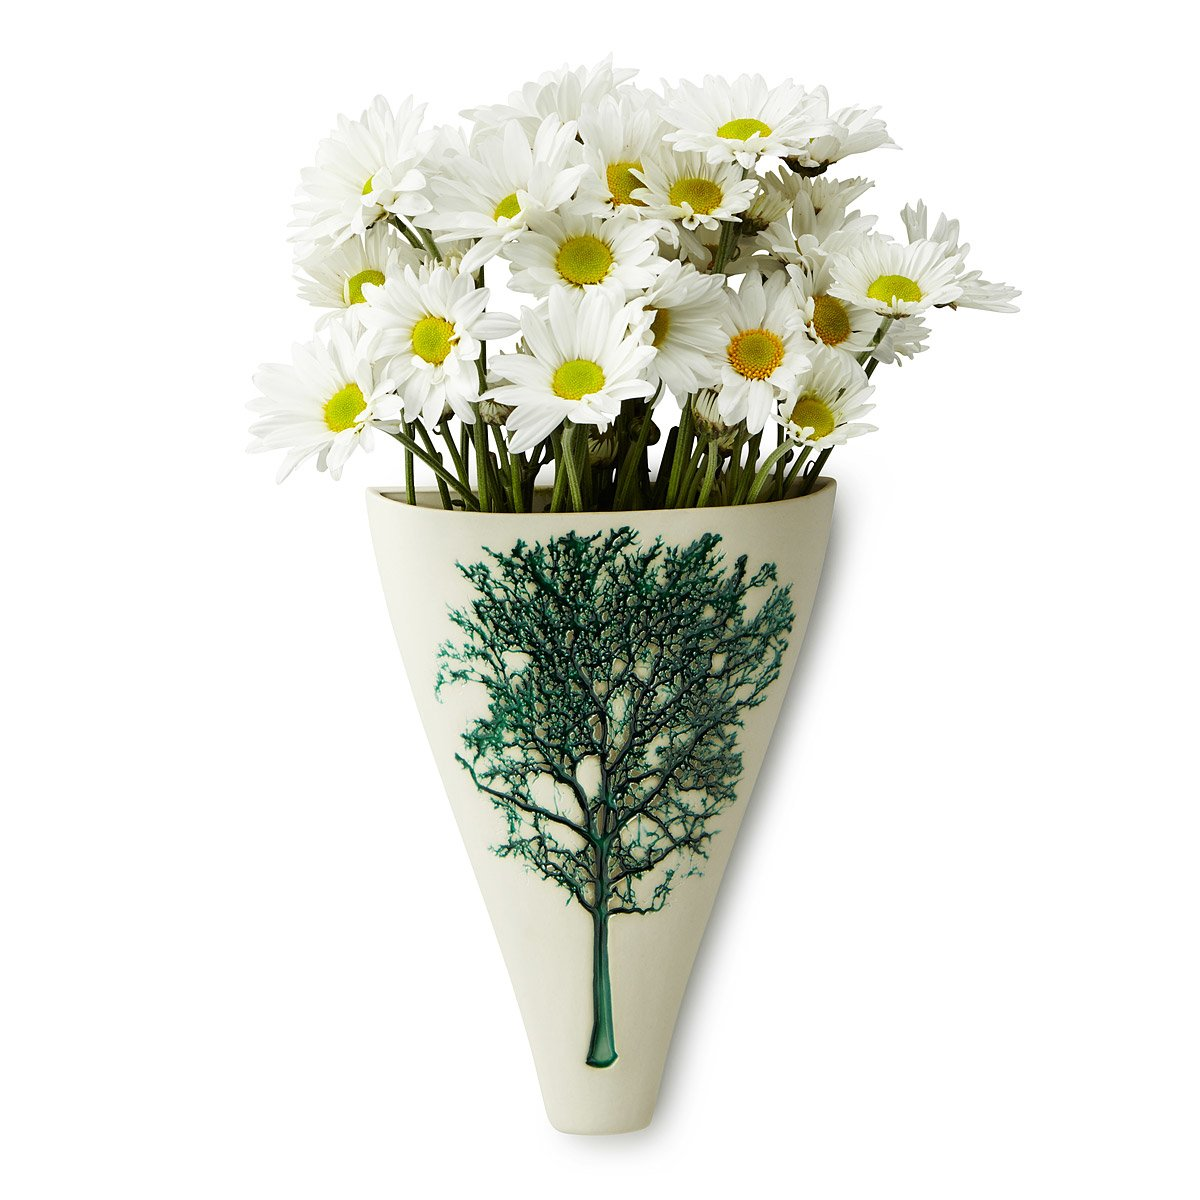 Wall vases for flowers - Tree Impression Wall Vase